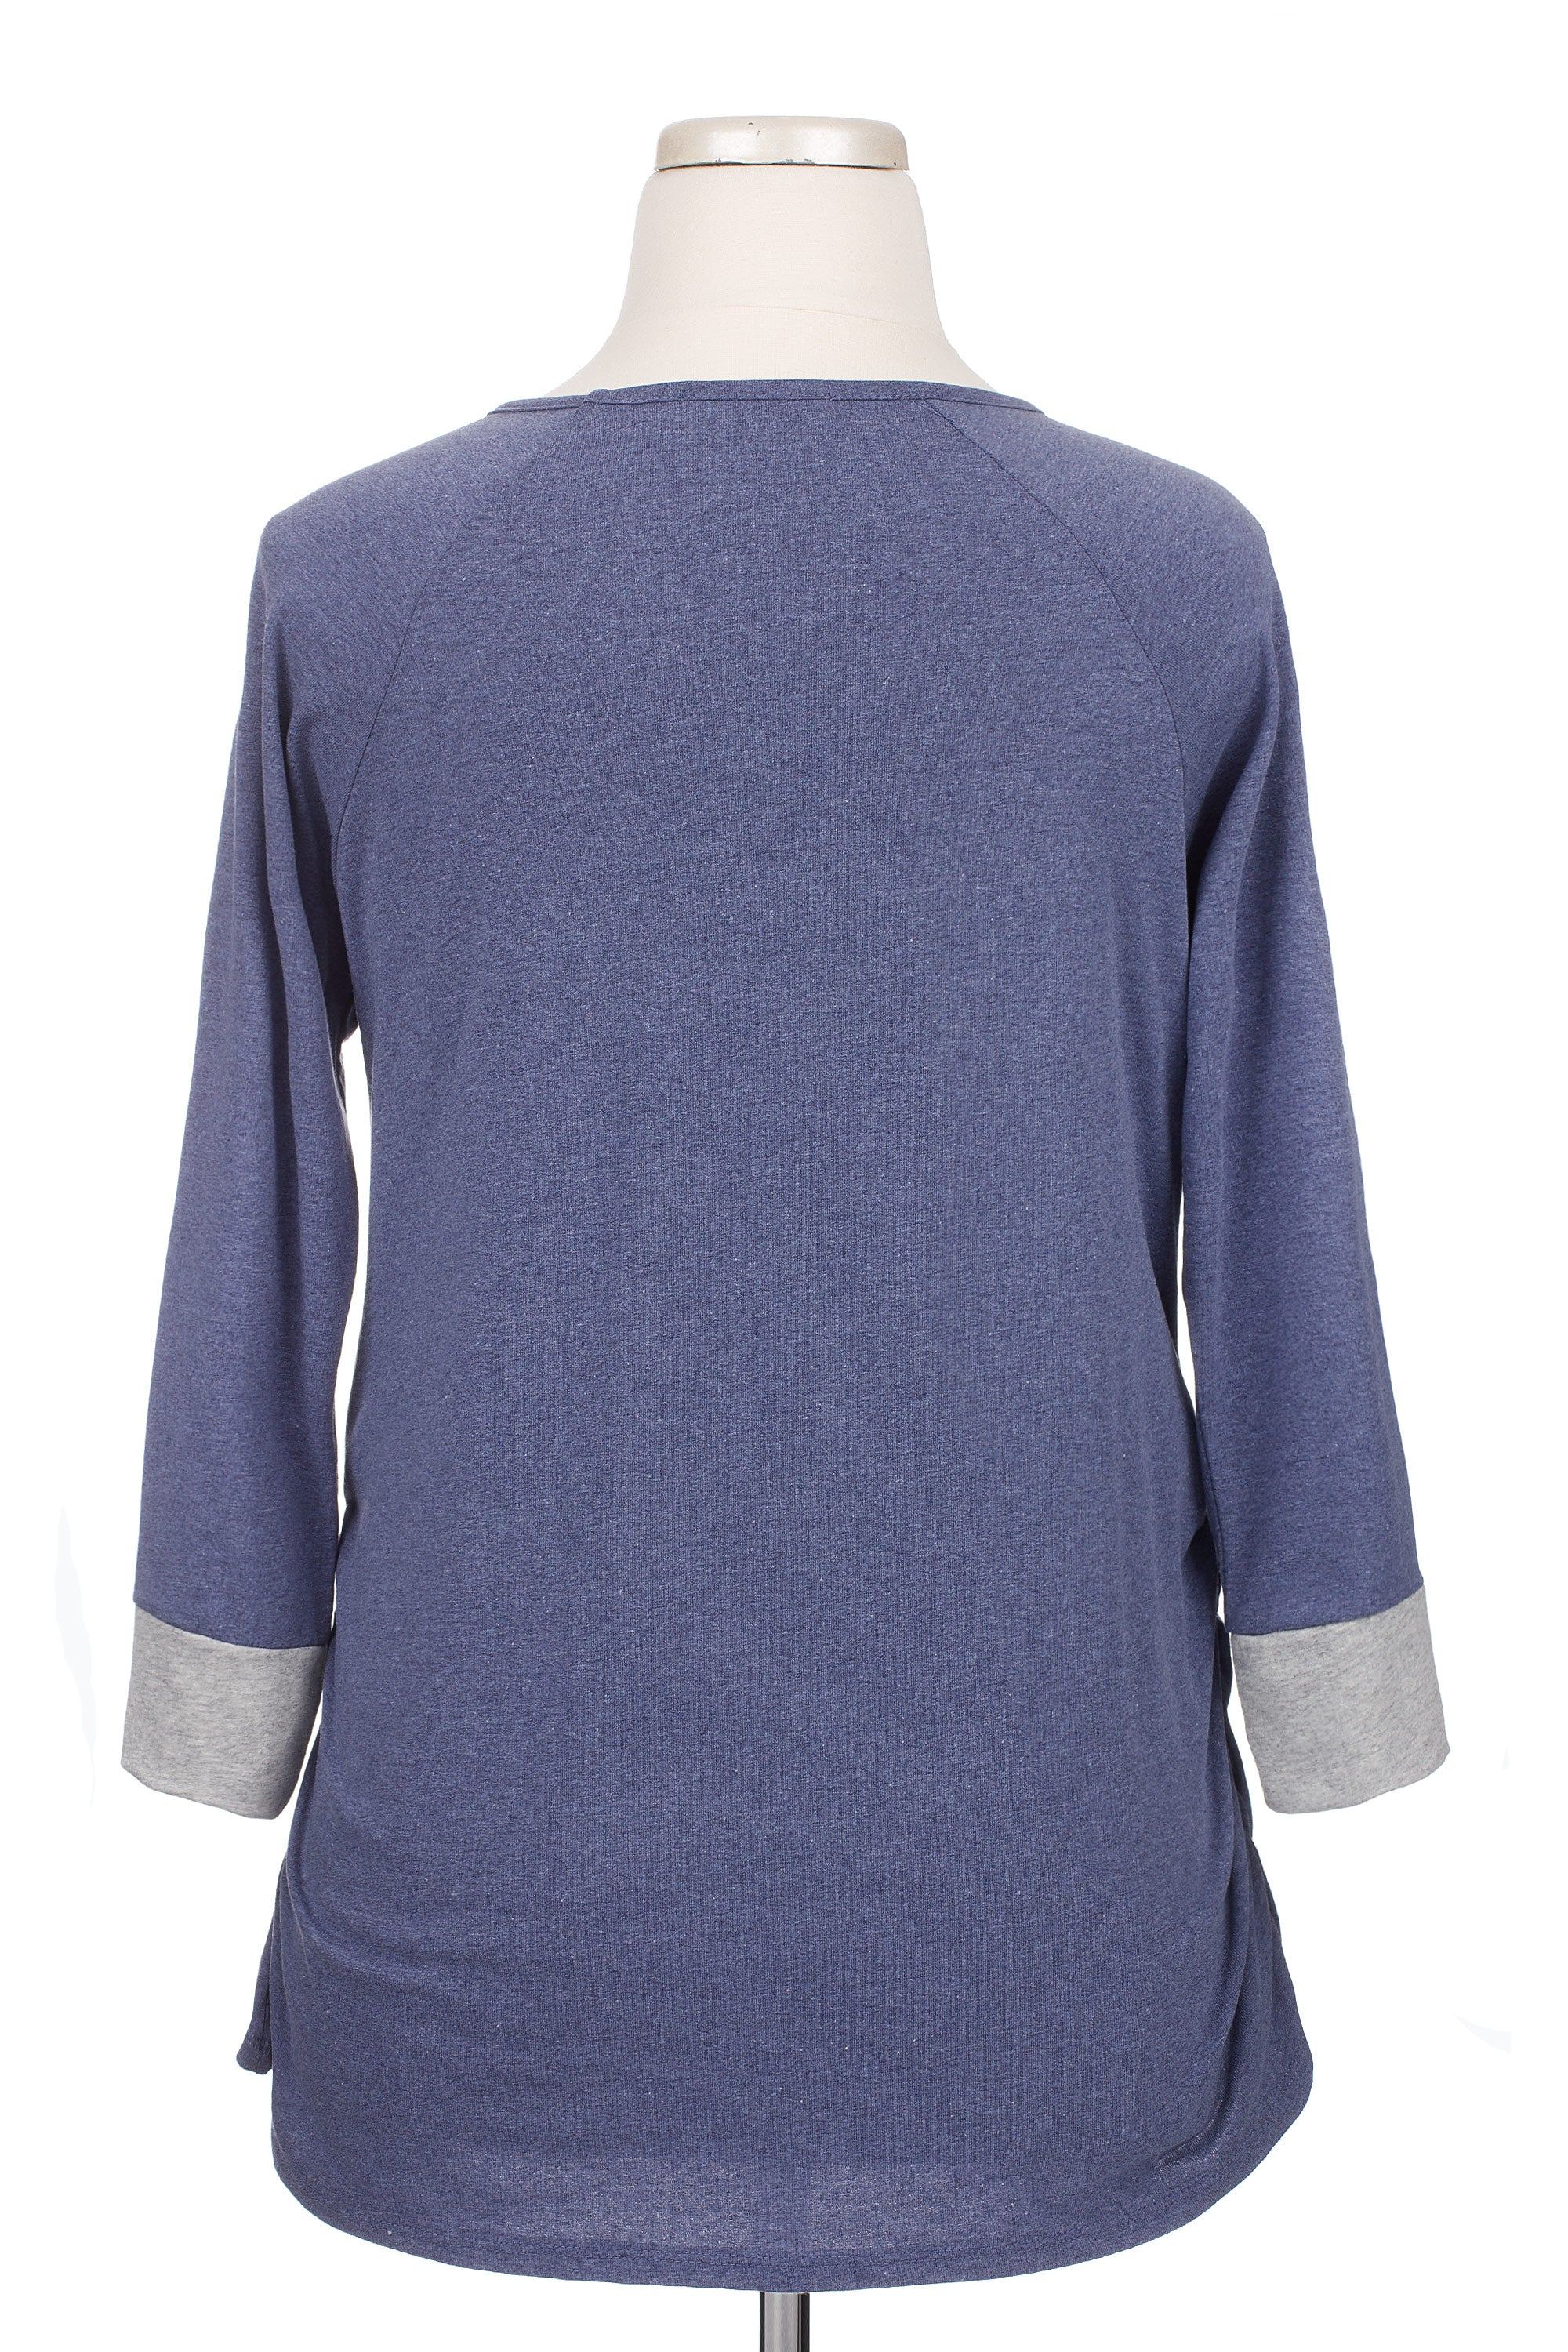 Type 2 Soothing Top in Blue